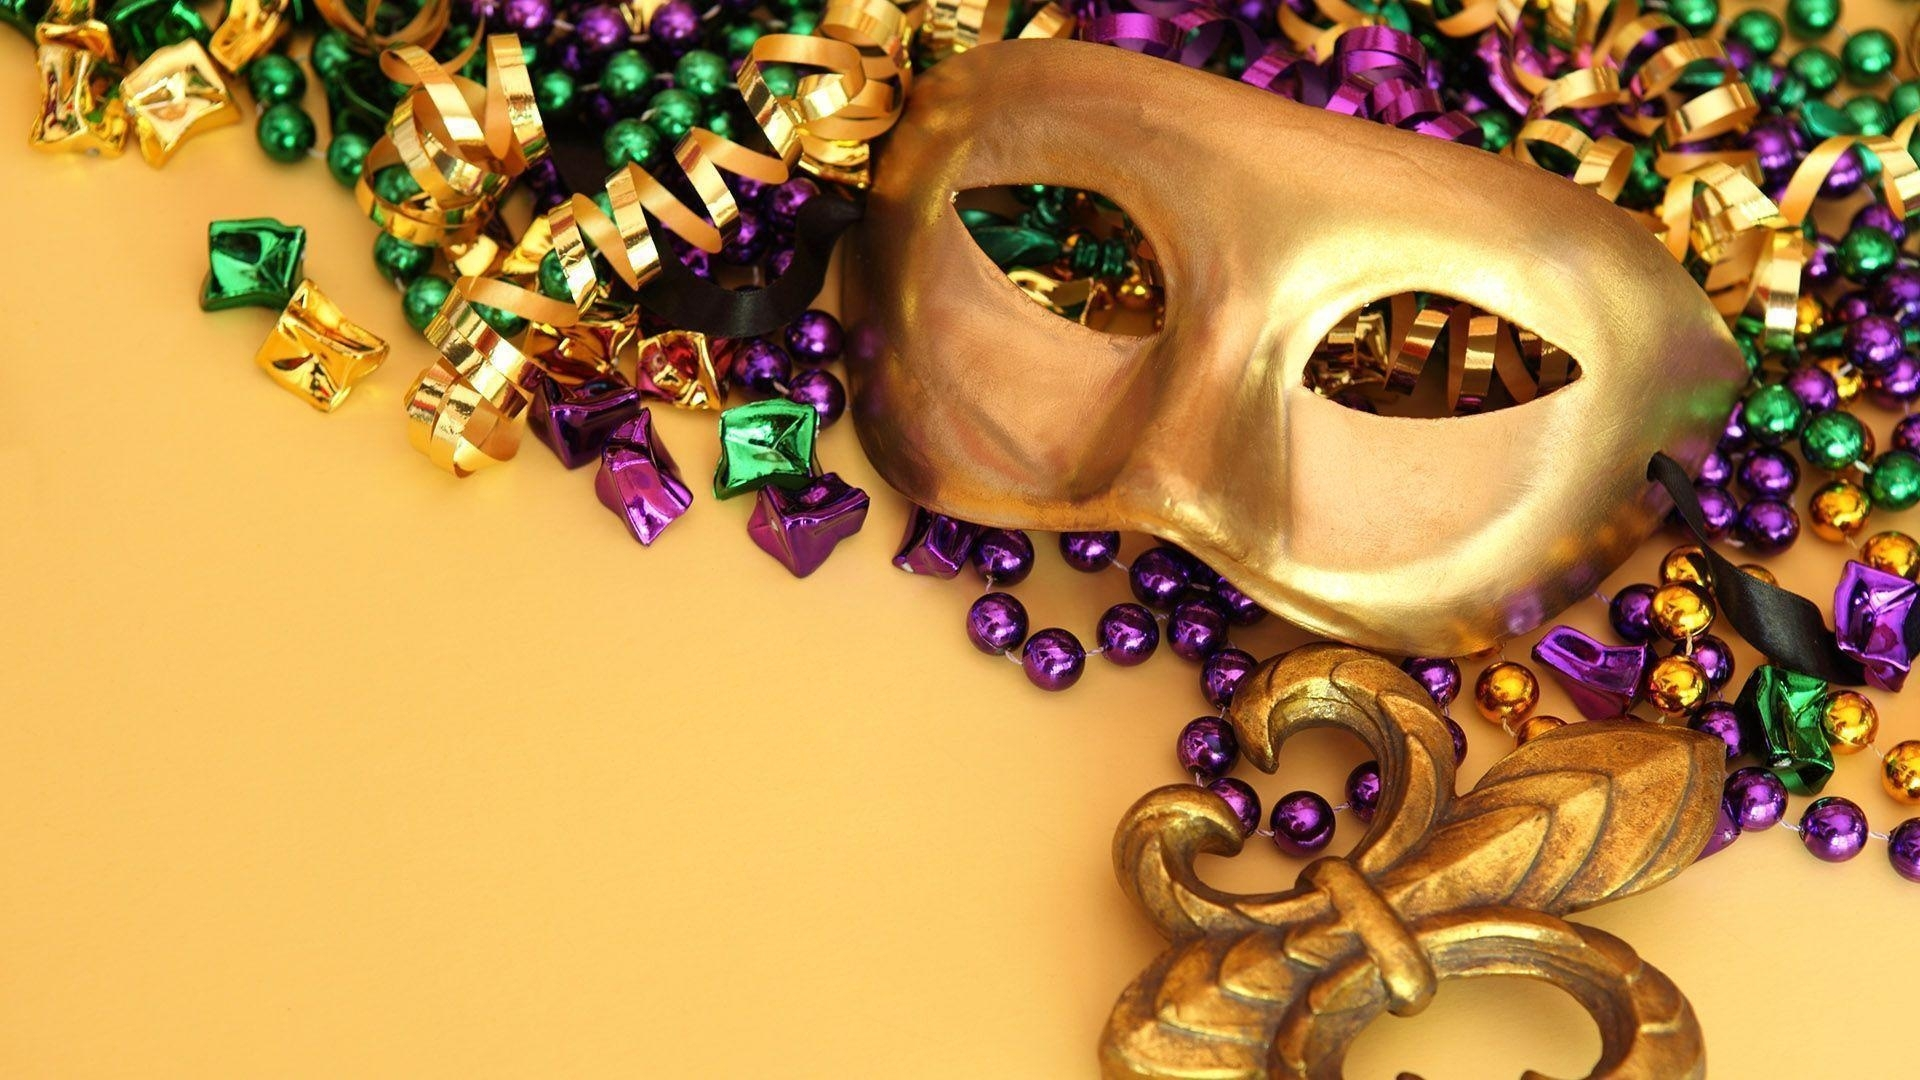 mardi gras desktop wallpaper 27889 - baltana